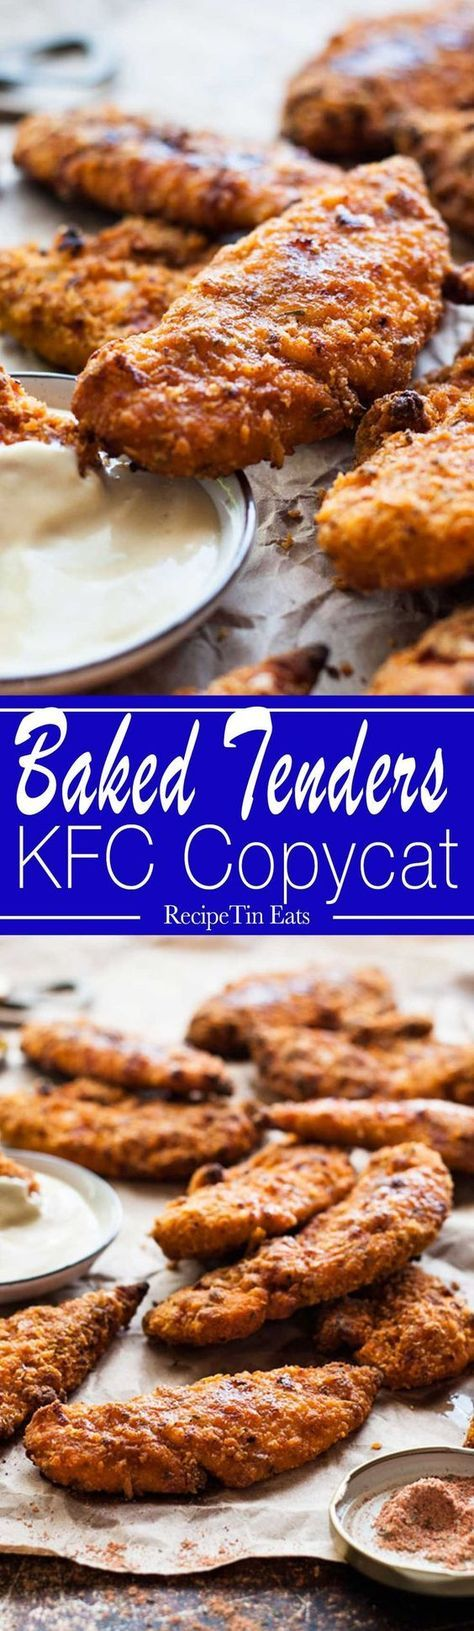 Kfc Oven Baked Fried Chicken Tenders Recipe Chicken Tenders Fried Chicken Tenders Baked Fried Chicken Food Recipes